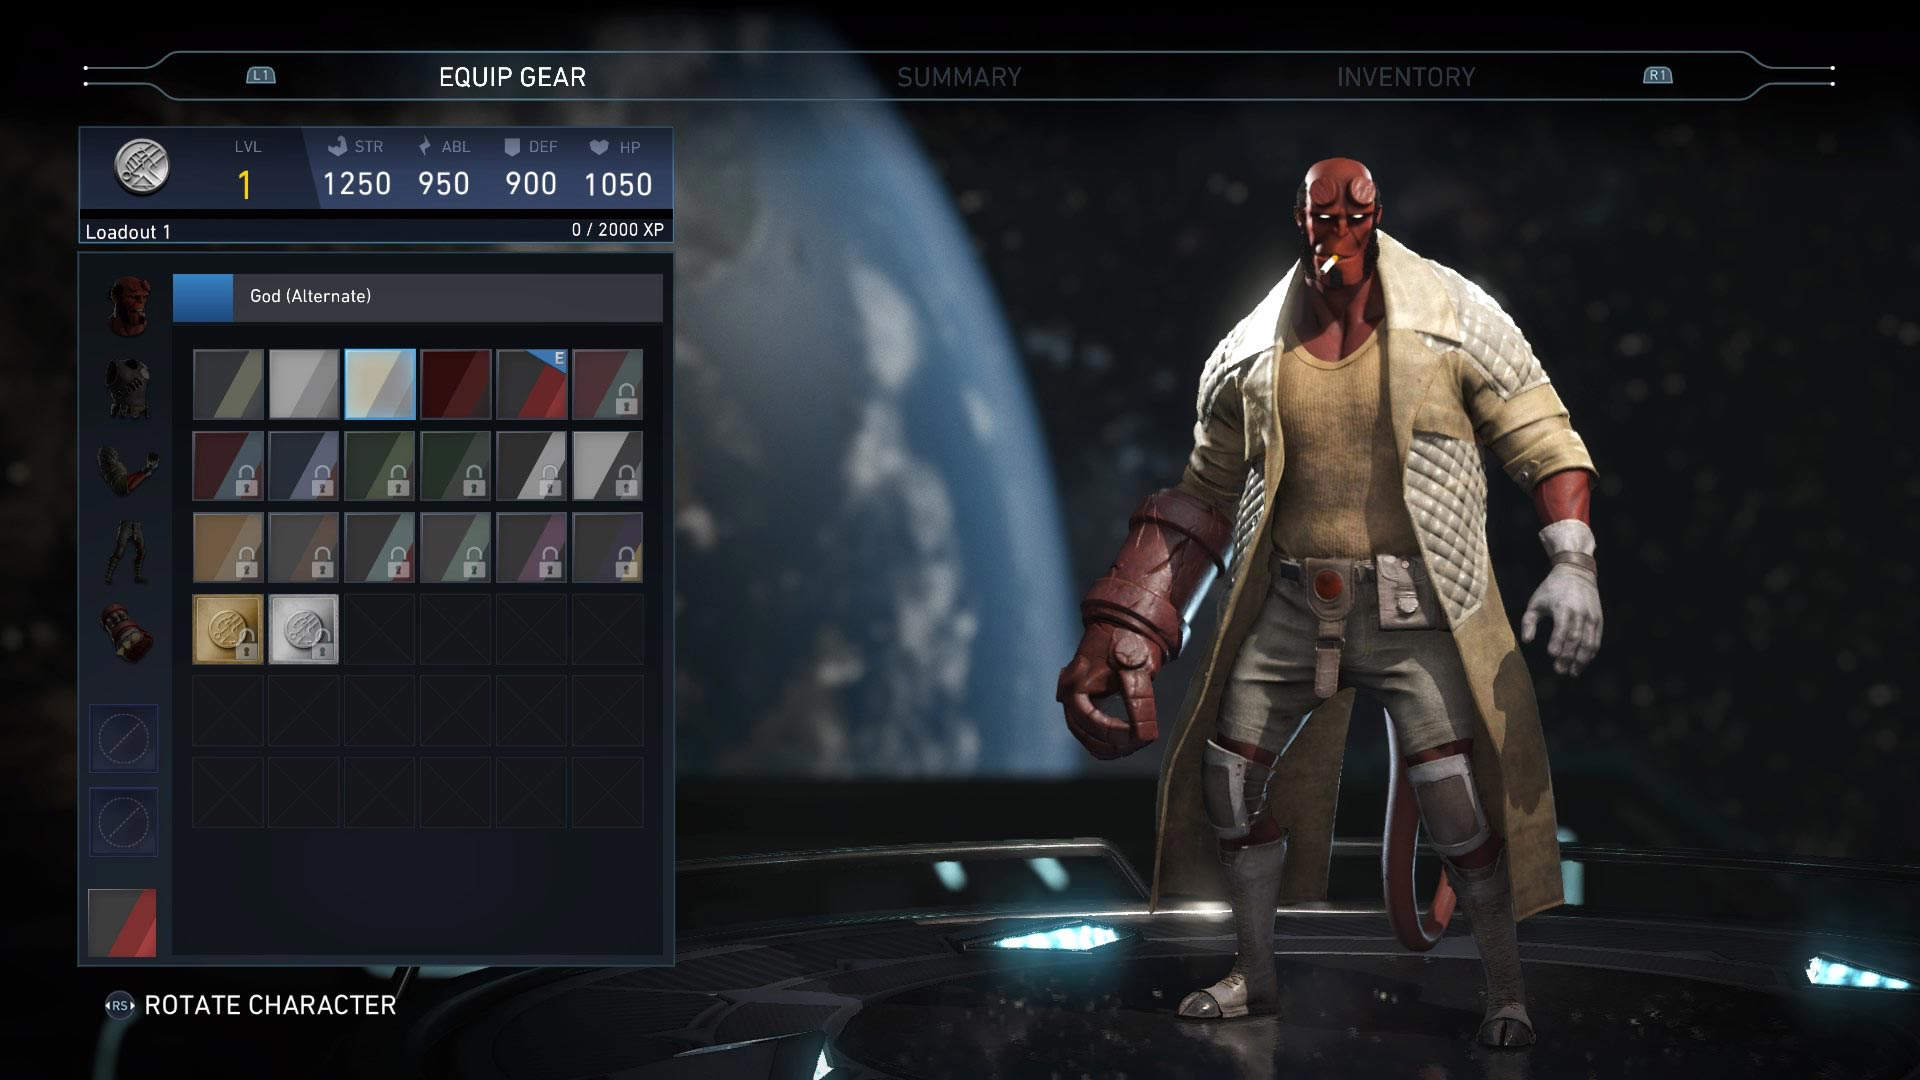 Hellboy in Injustice 2 9 out of 9 image gallery